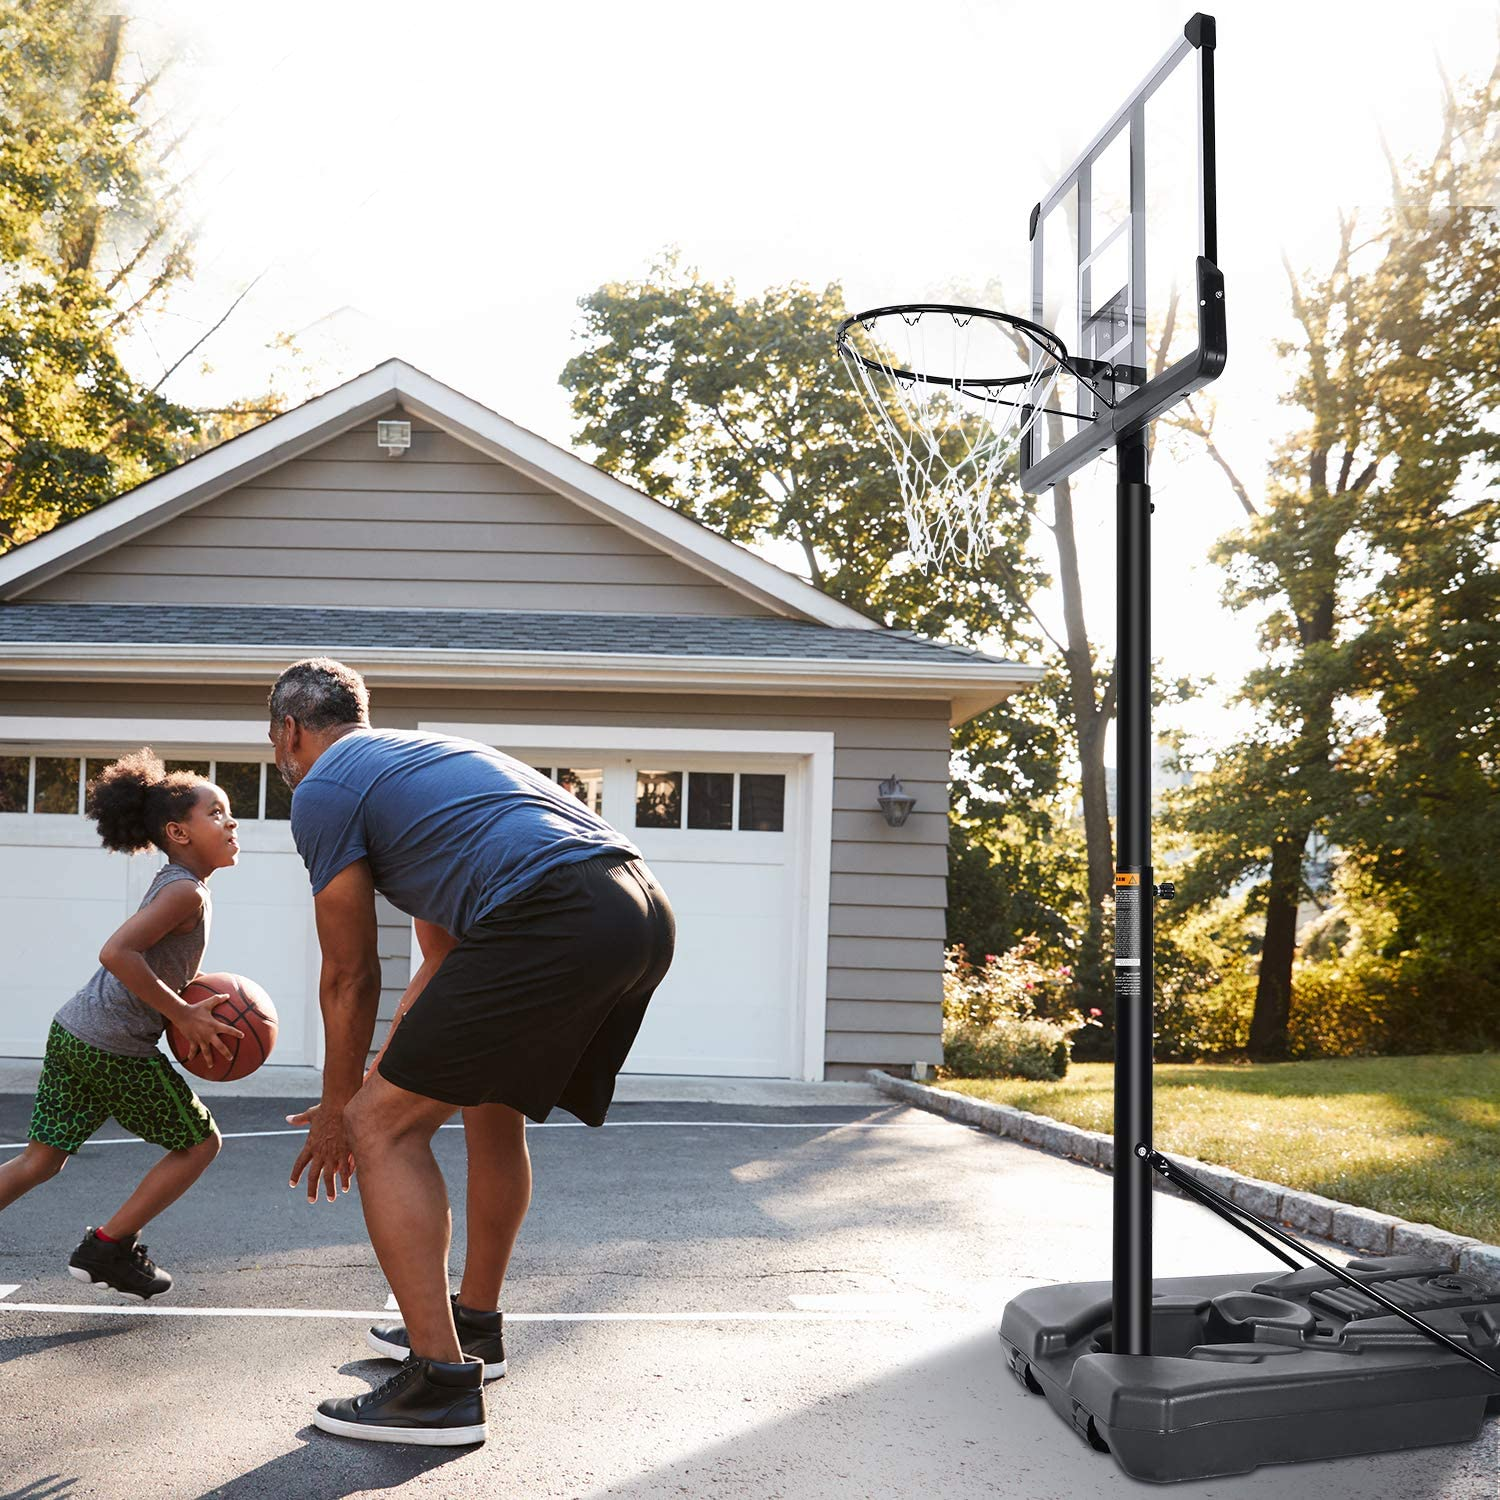 Portable Basketball Hoop & Goal Basketball System Adjustable 7ft 6in-10ft with 44 Inch Backboard and Wheels ndoor Outdoor Use